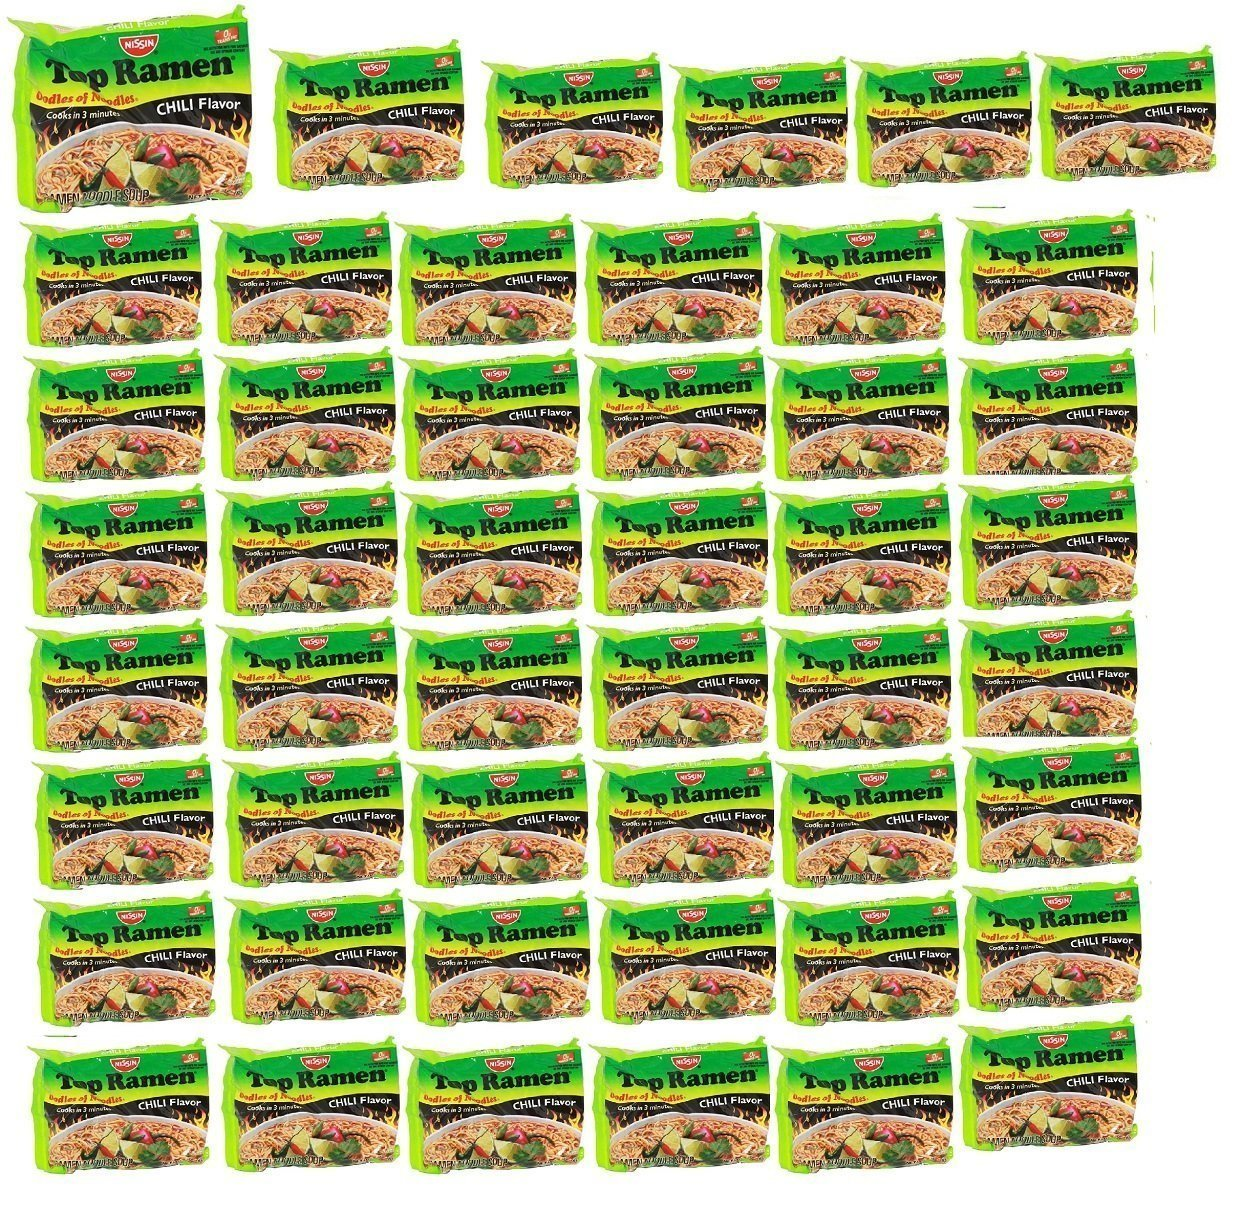 Nissin TOP Ramen Noodle Soup Chili Flavor with Og Trans FAT for Best in Ramen Instant Noddle Soup- 48 Pack of 3 Oz Bags by Nissin